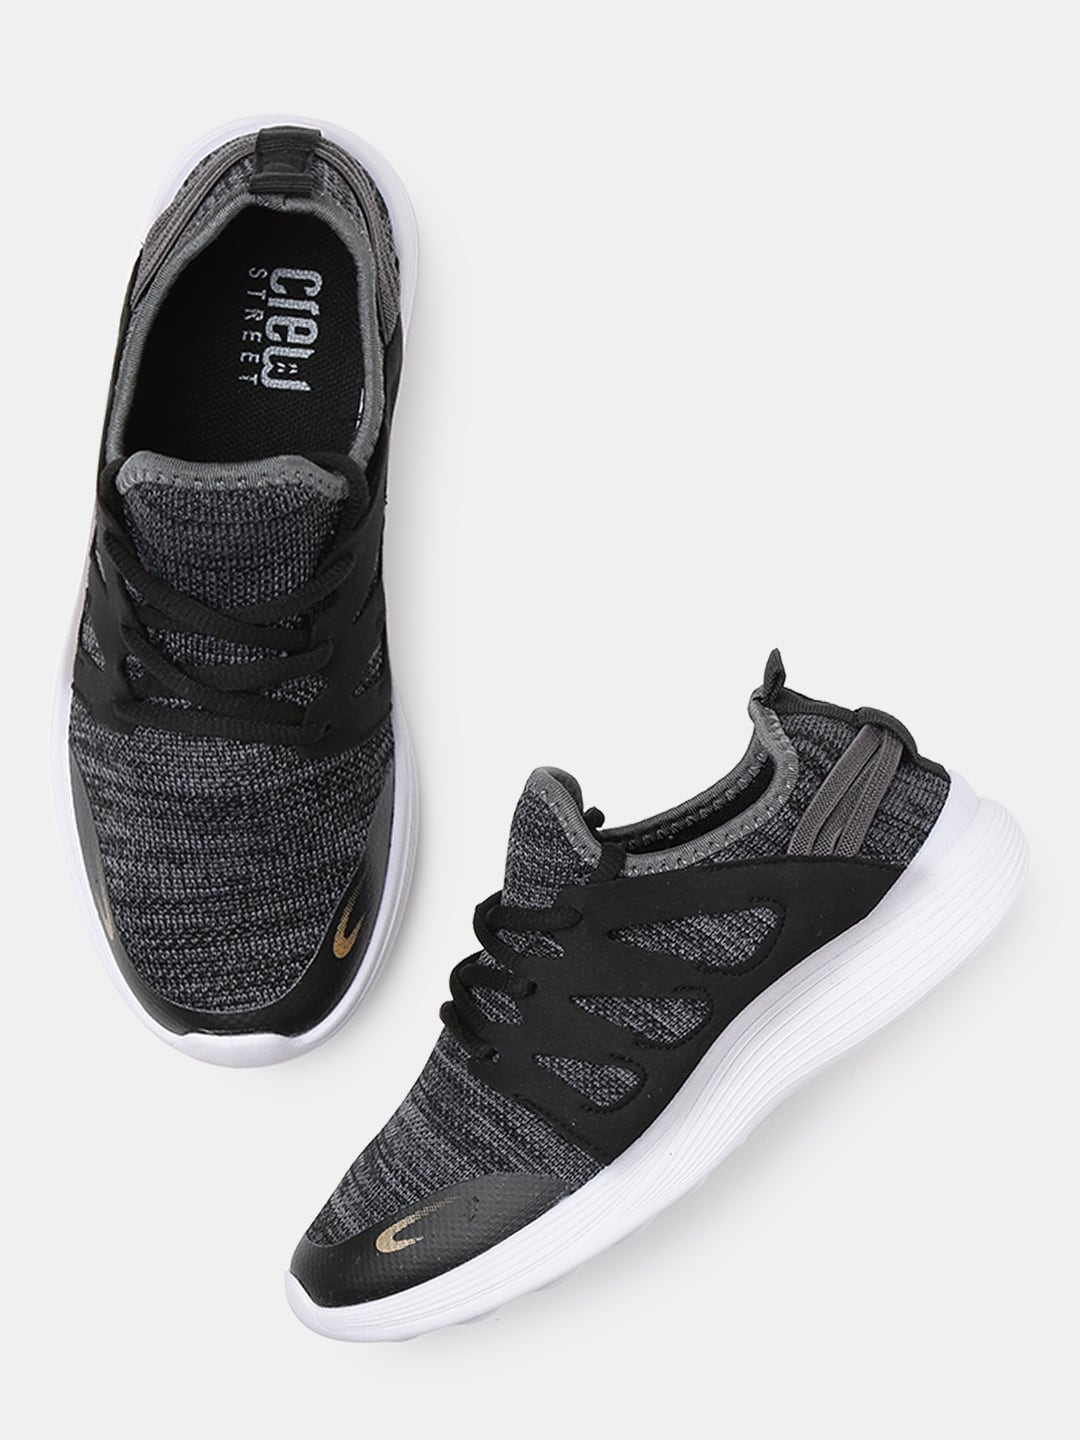 8f2bc51d86 Crew Street Sports Shoes - Buy Crew Street Sports Shoes online in India